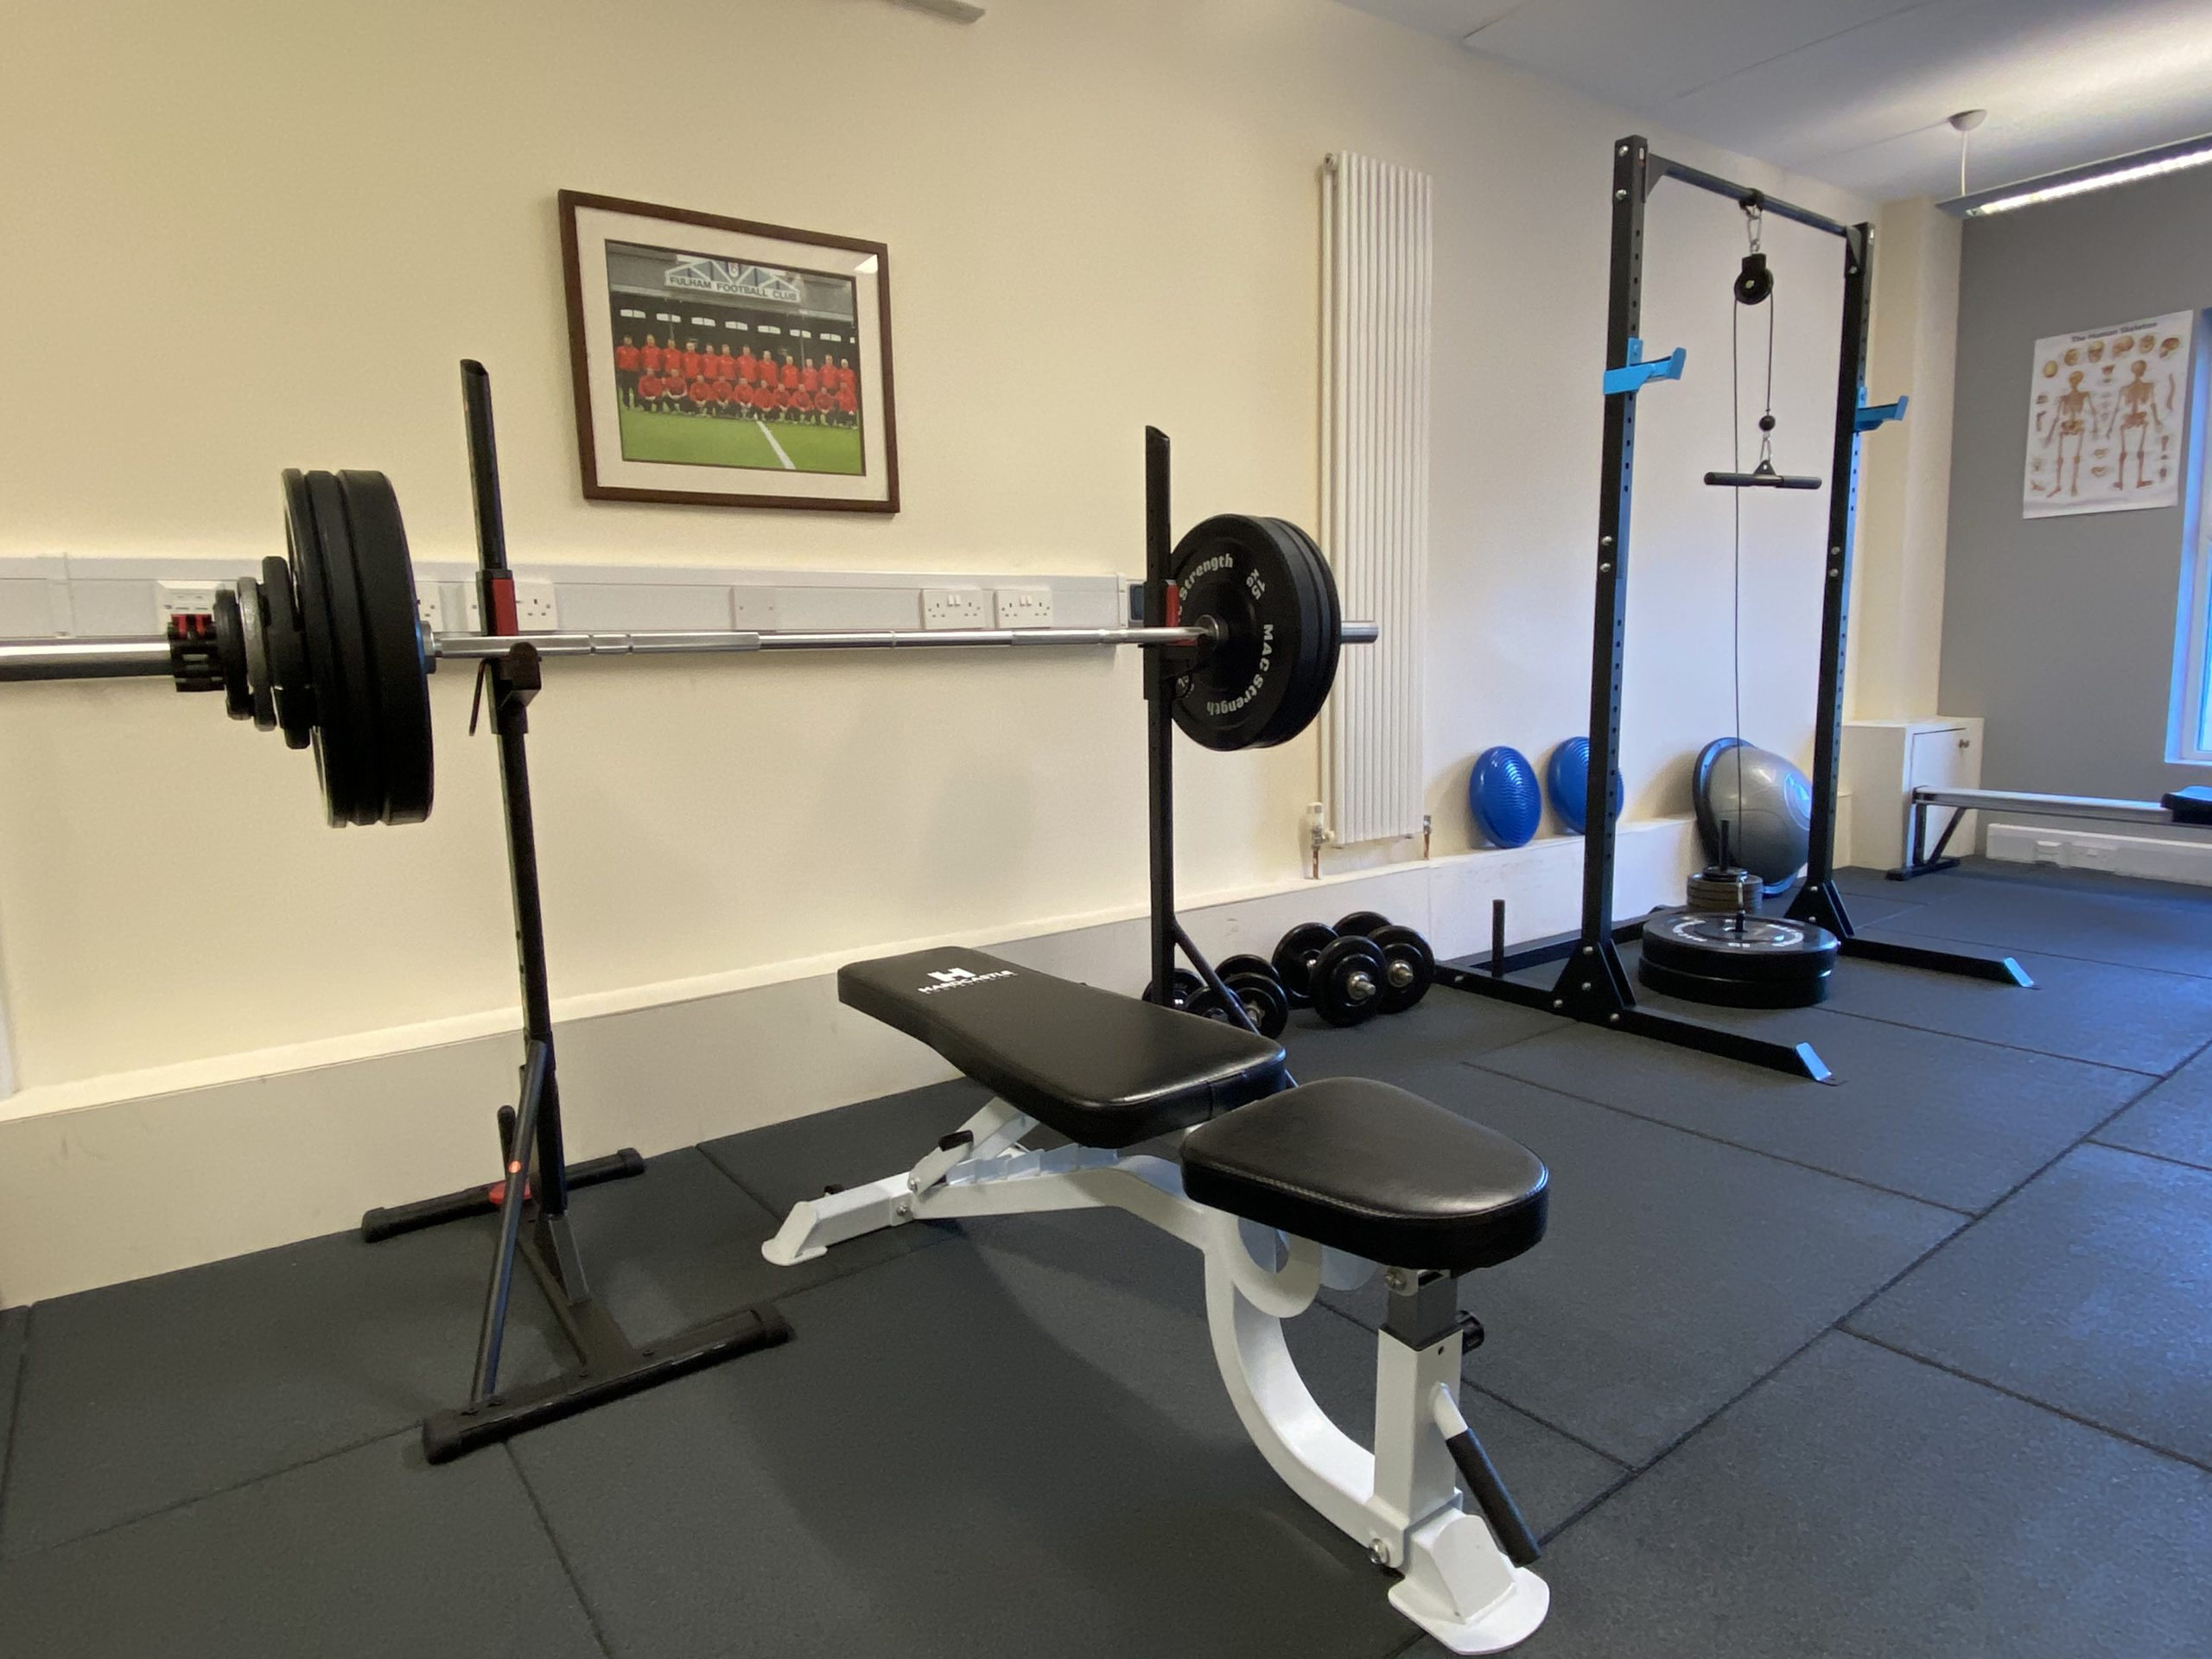 Bench press, squat rack and dumbbells in gym